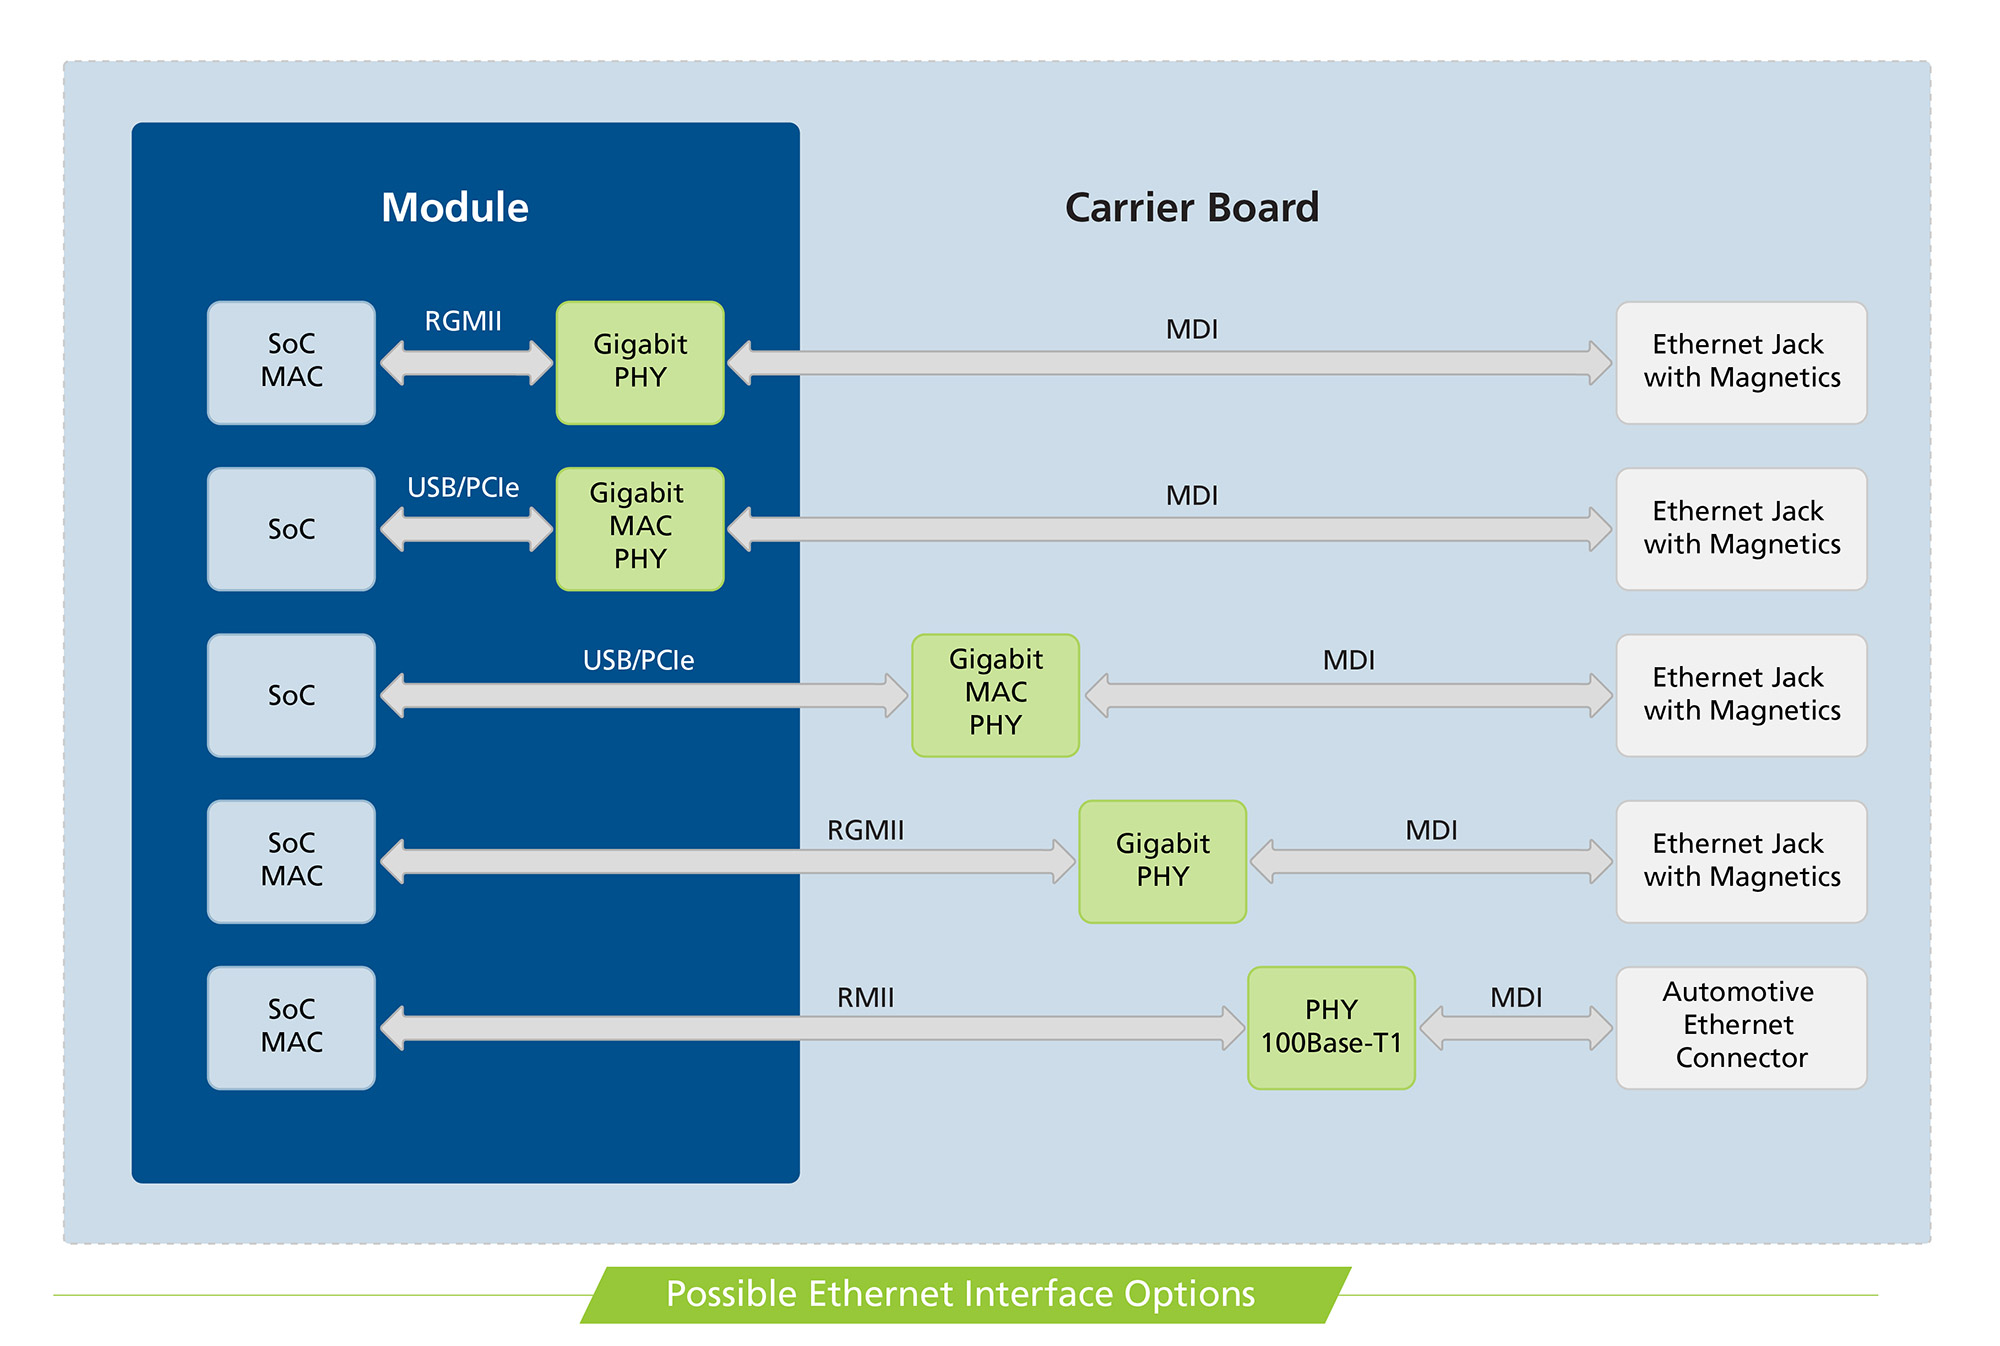 Possible Ethernet Interface Options